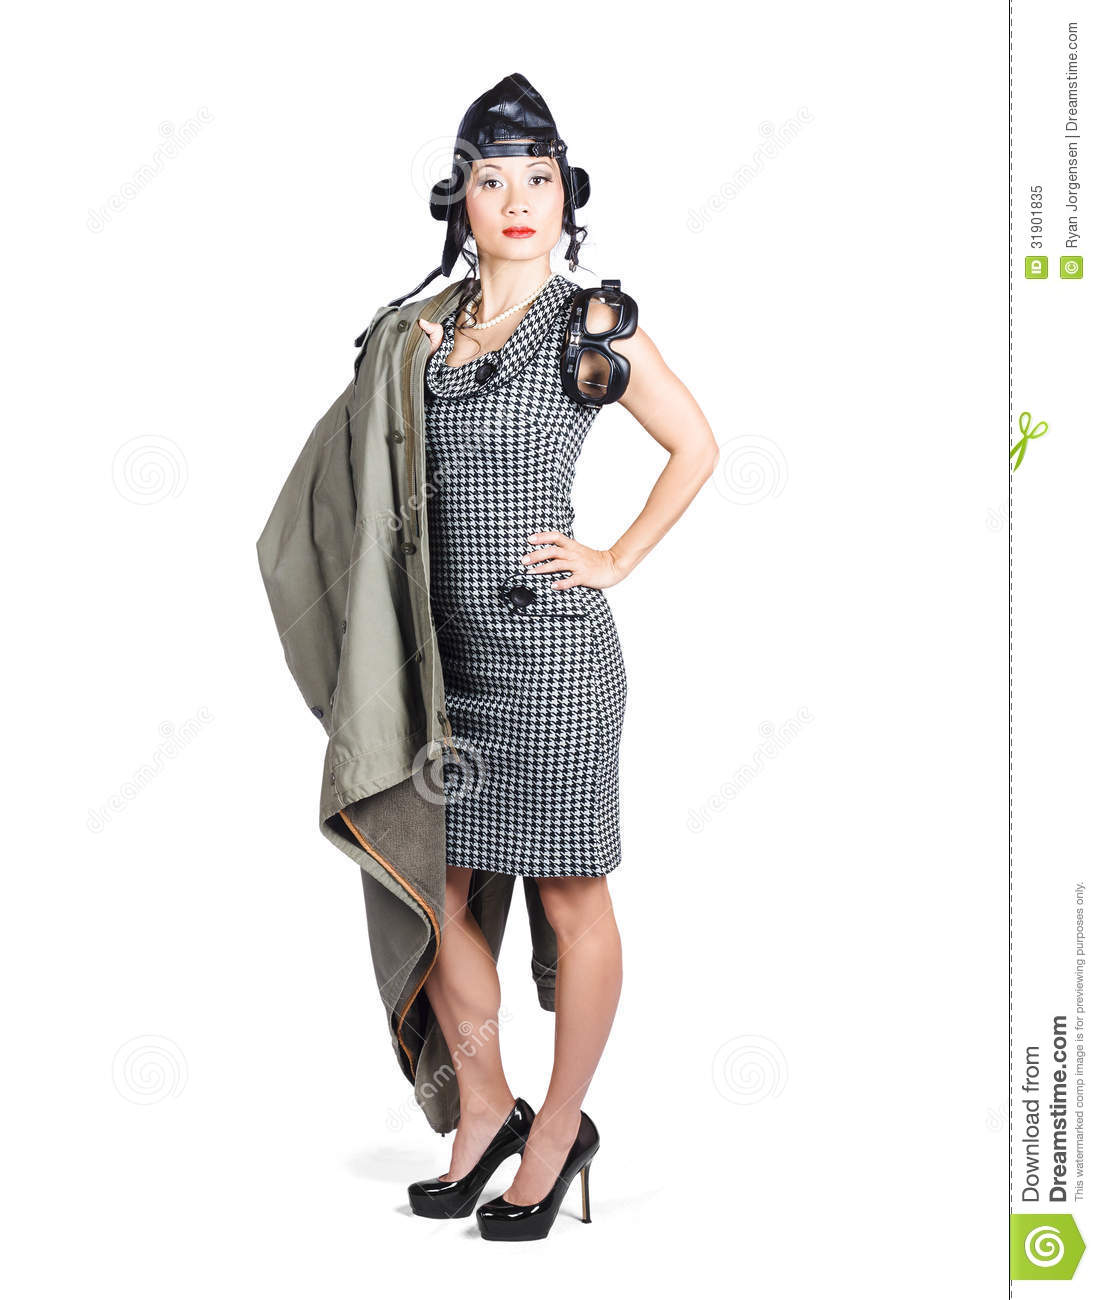 Isolated Asian Pin Up Lady Air Force Style Royalty Free